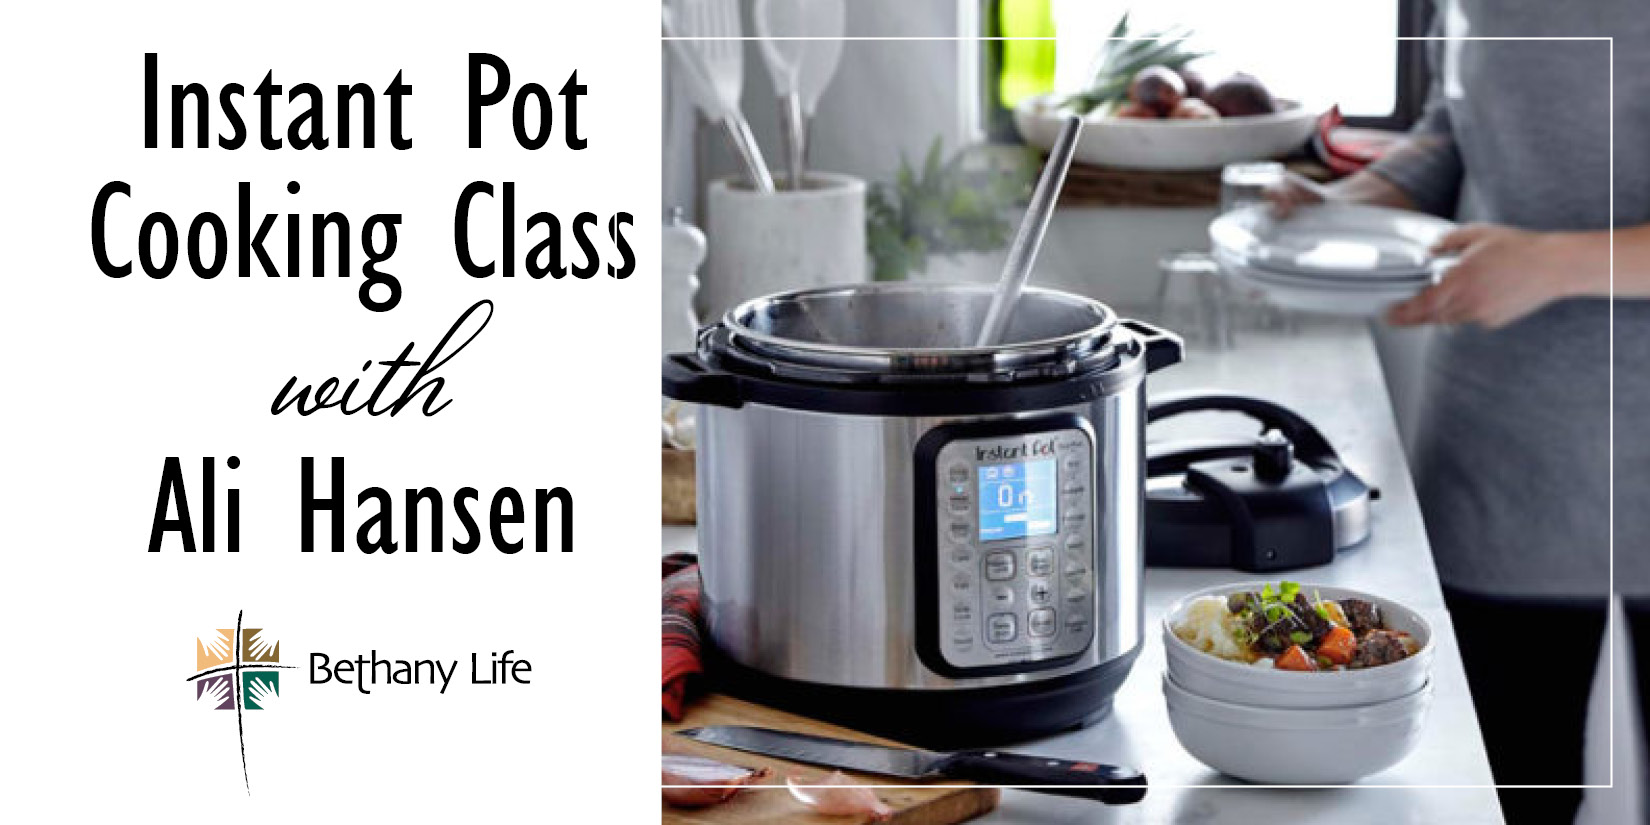 Instant Pot Cooking Class With Alli Hansen